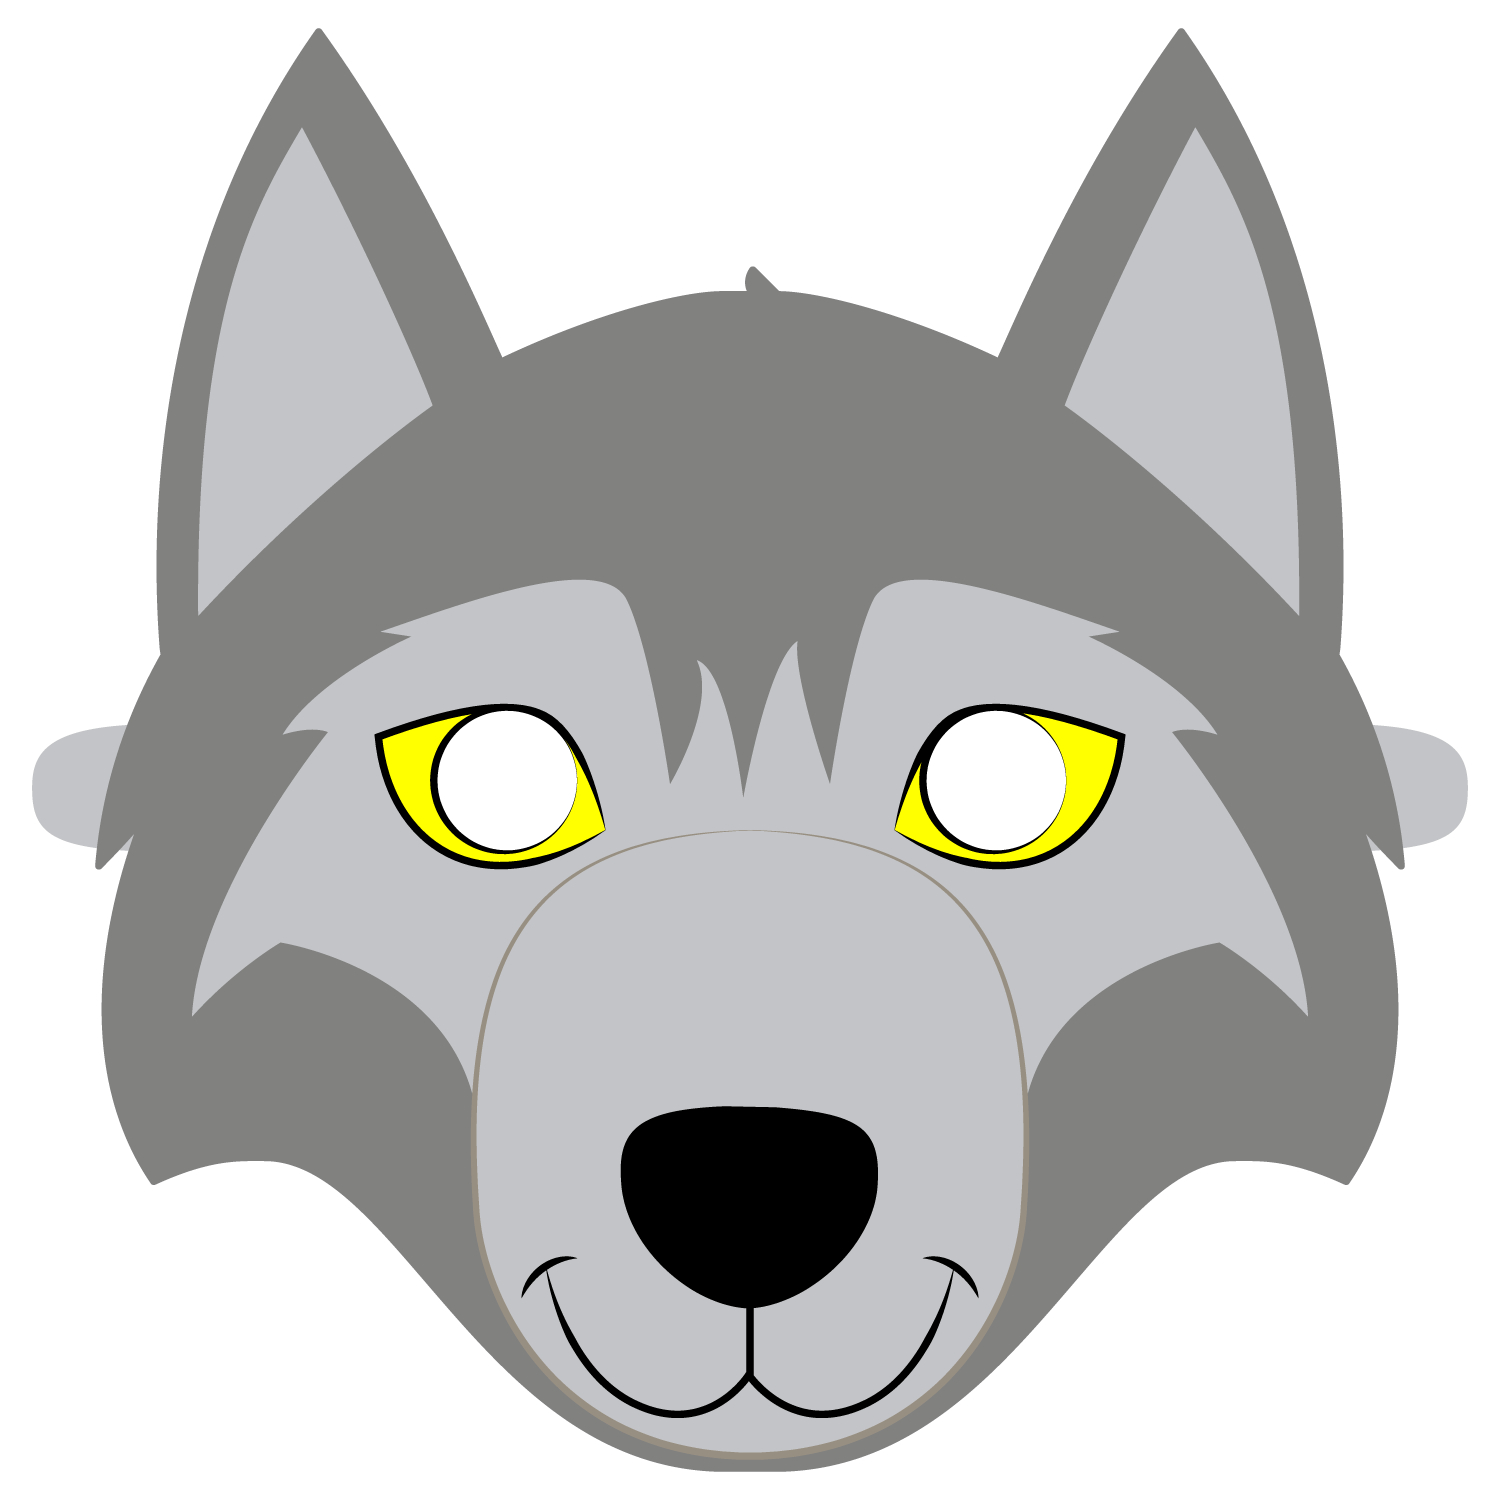 Wolf Mask Template   Free Printable Papercraft Templates - Free Printable Wolf Mask